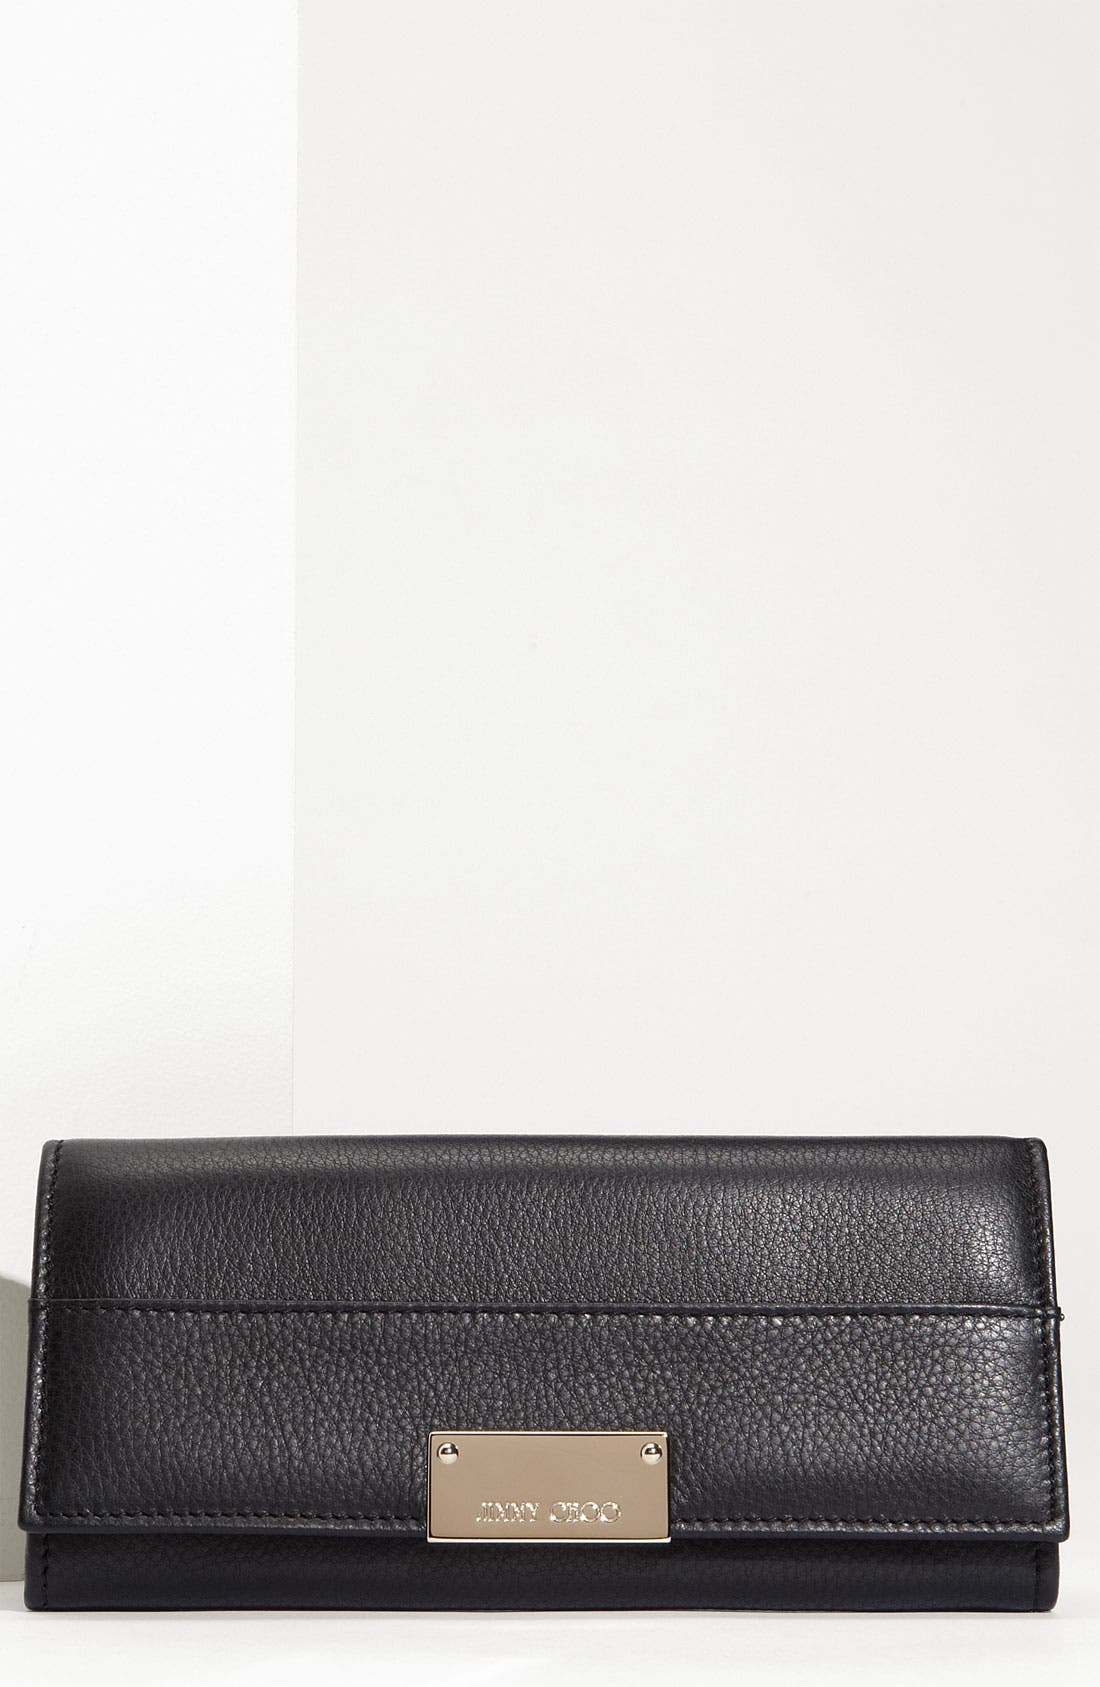 Main Image - Jimmy Choo 'Reza' Calfskin Leather Wallet